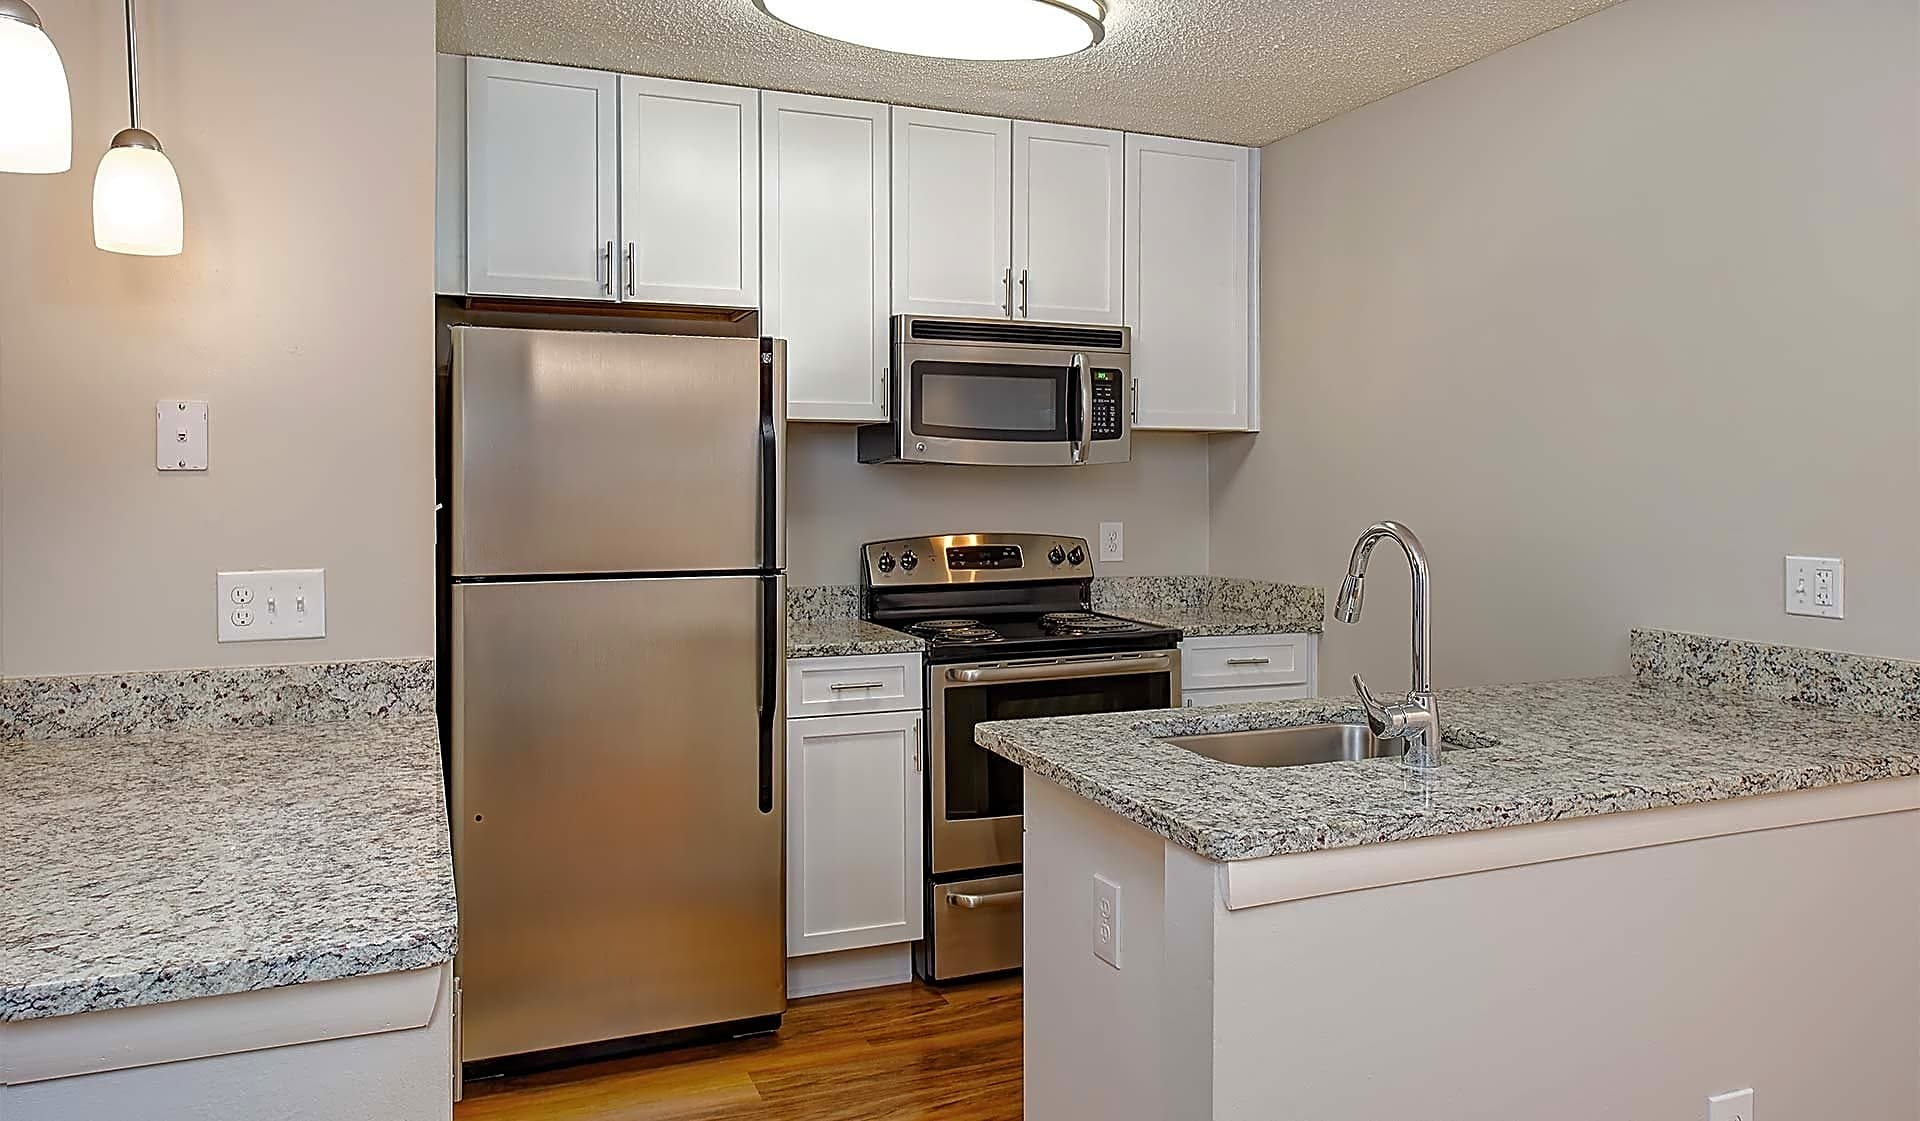 The Windsor and Cambridge kitchens feature a breakfast bar